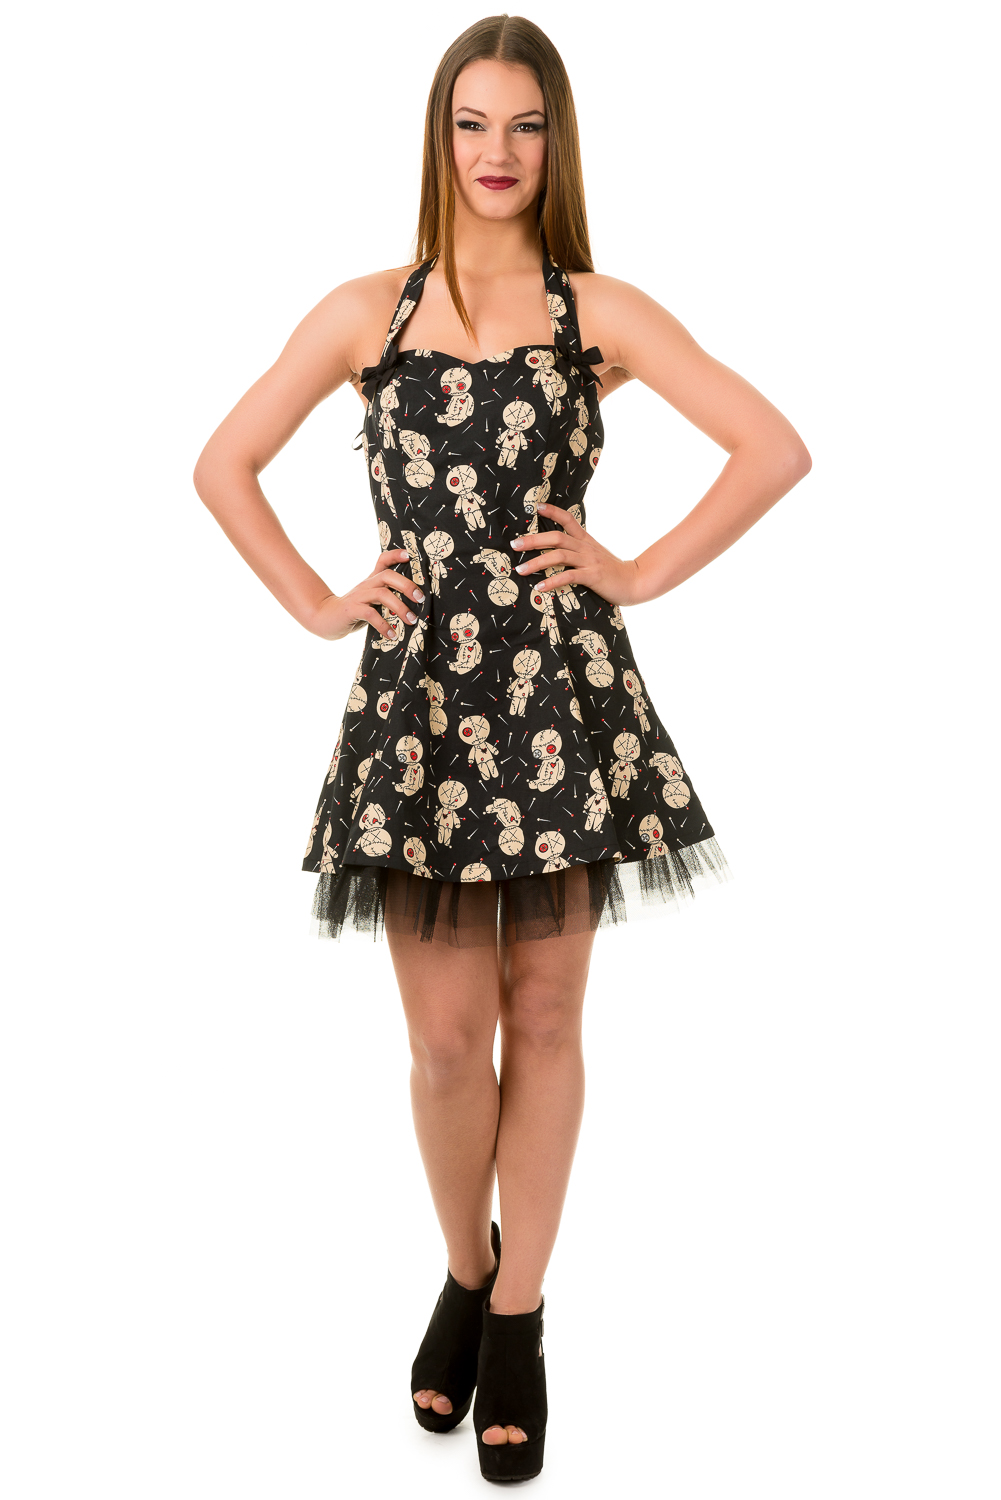 Banned Distractions Voodoo Dolls Mini Dress